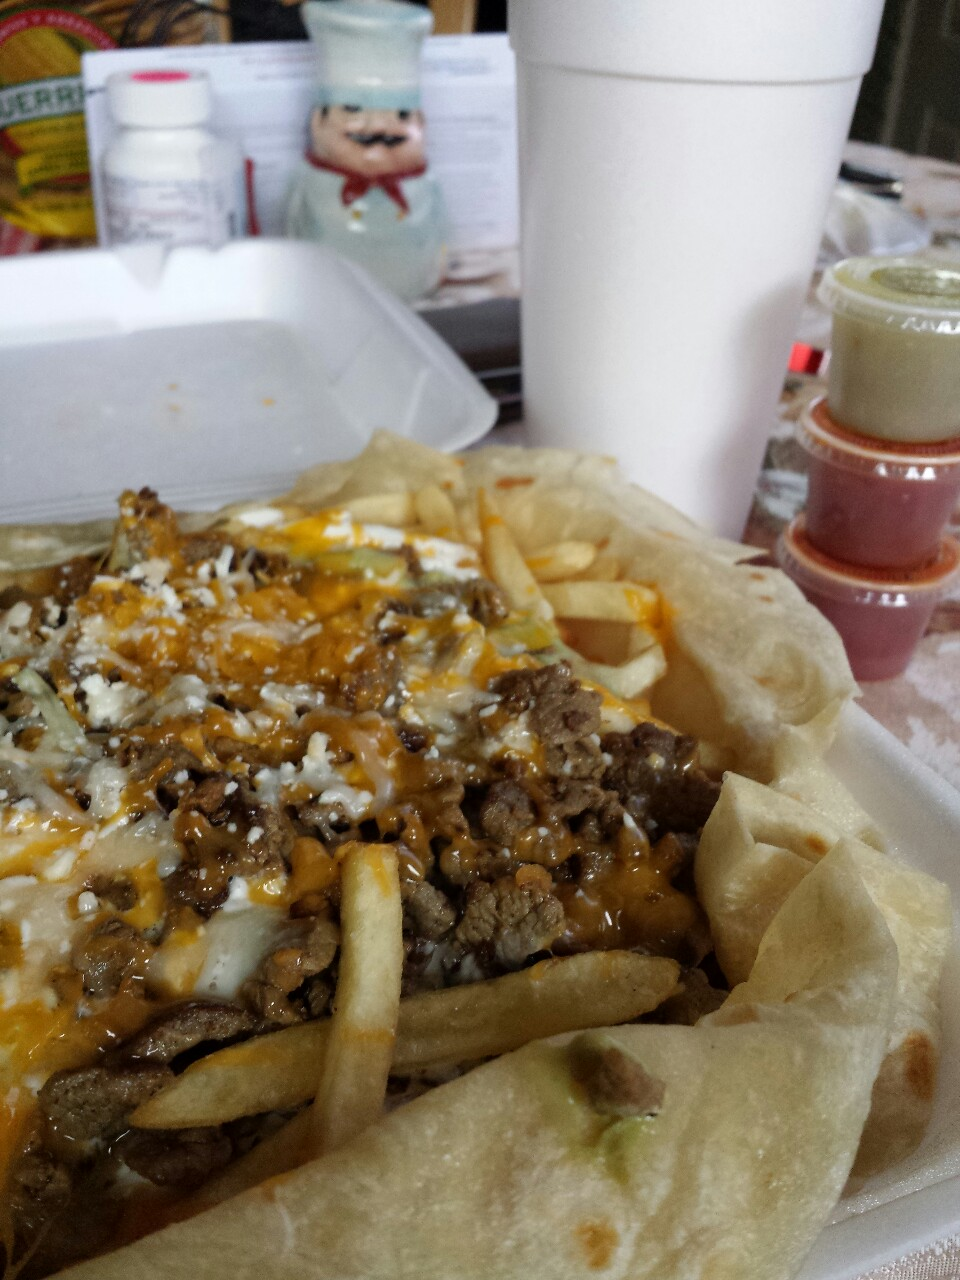 hip-hop-lifestyle: carne asada fries…its been way too long.